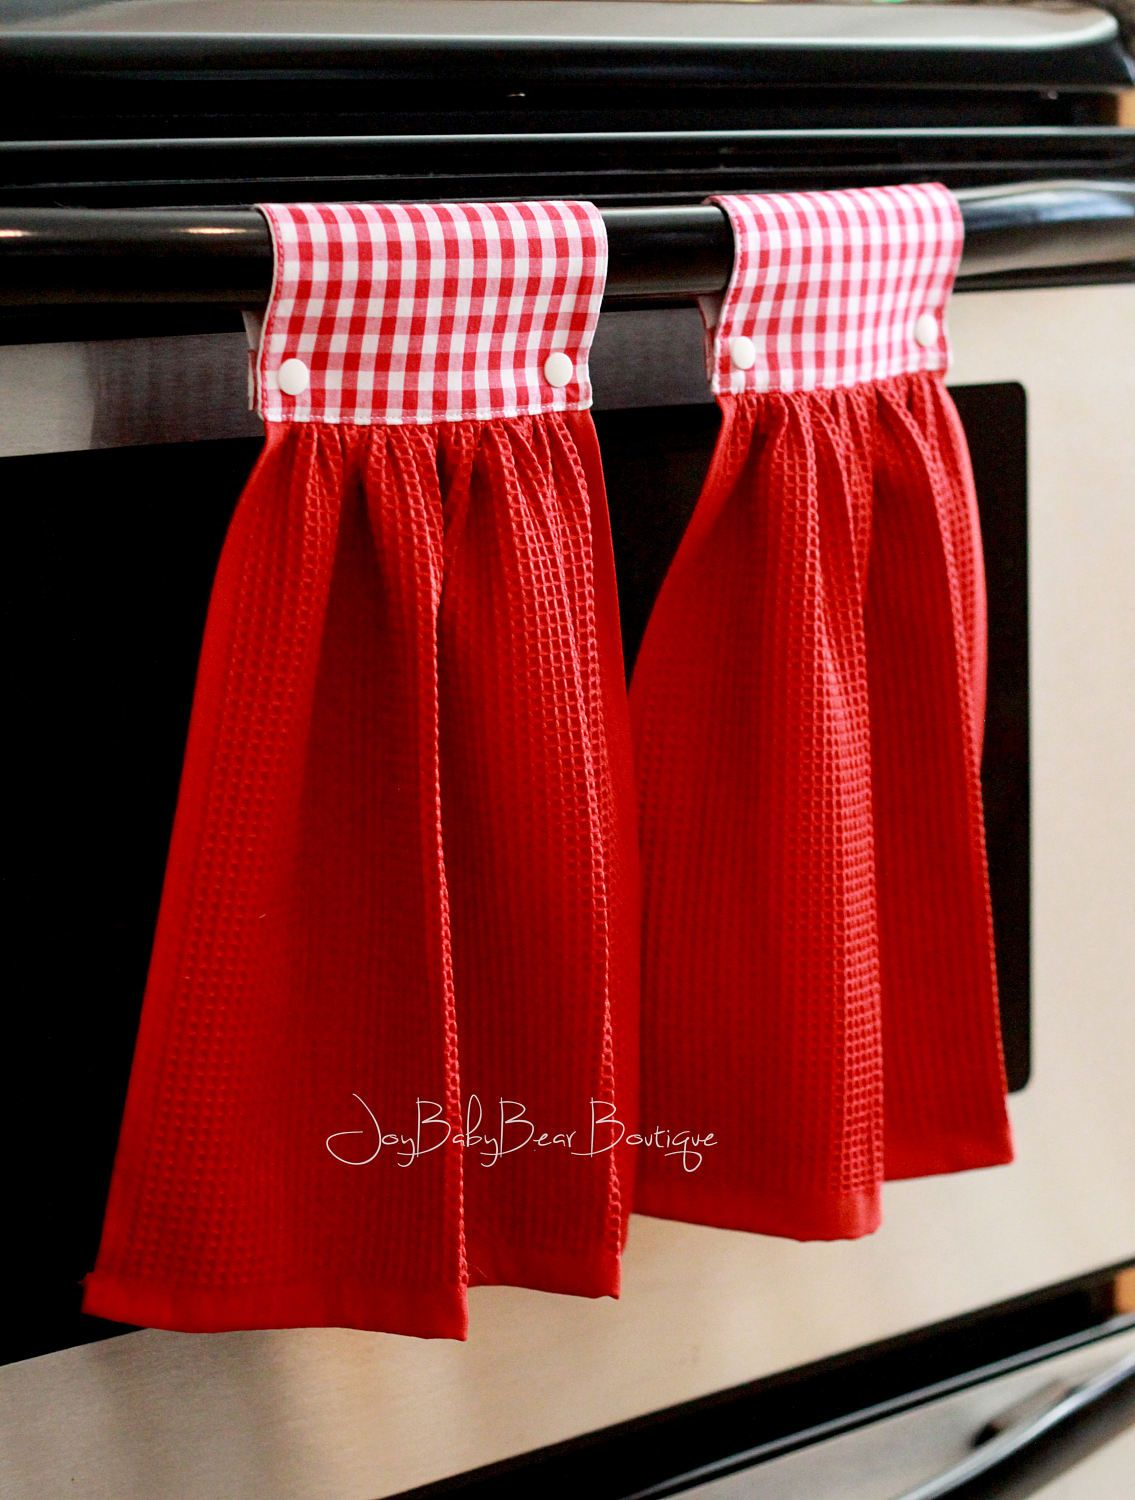 Red Gingham Towels Hanging Kitchen Towel Red Kitchen Towel